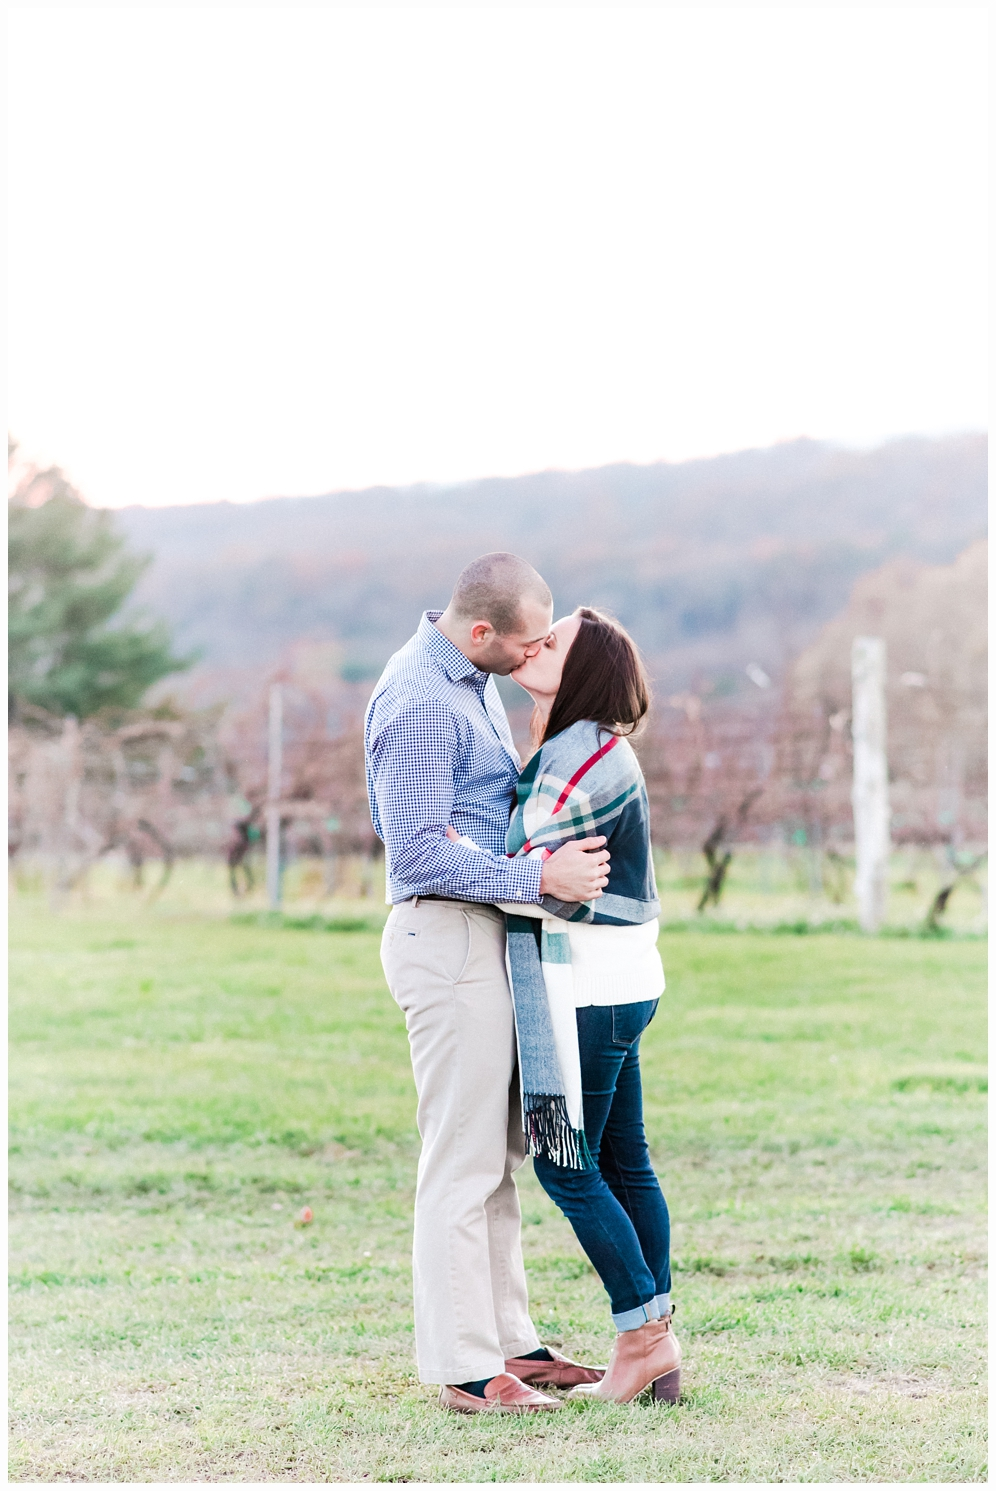 Kelsey and Matt Engagement Session_0820.jpg